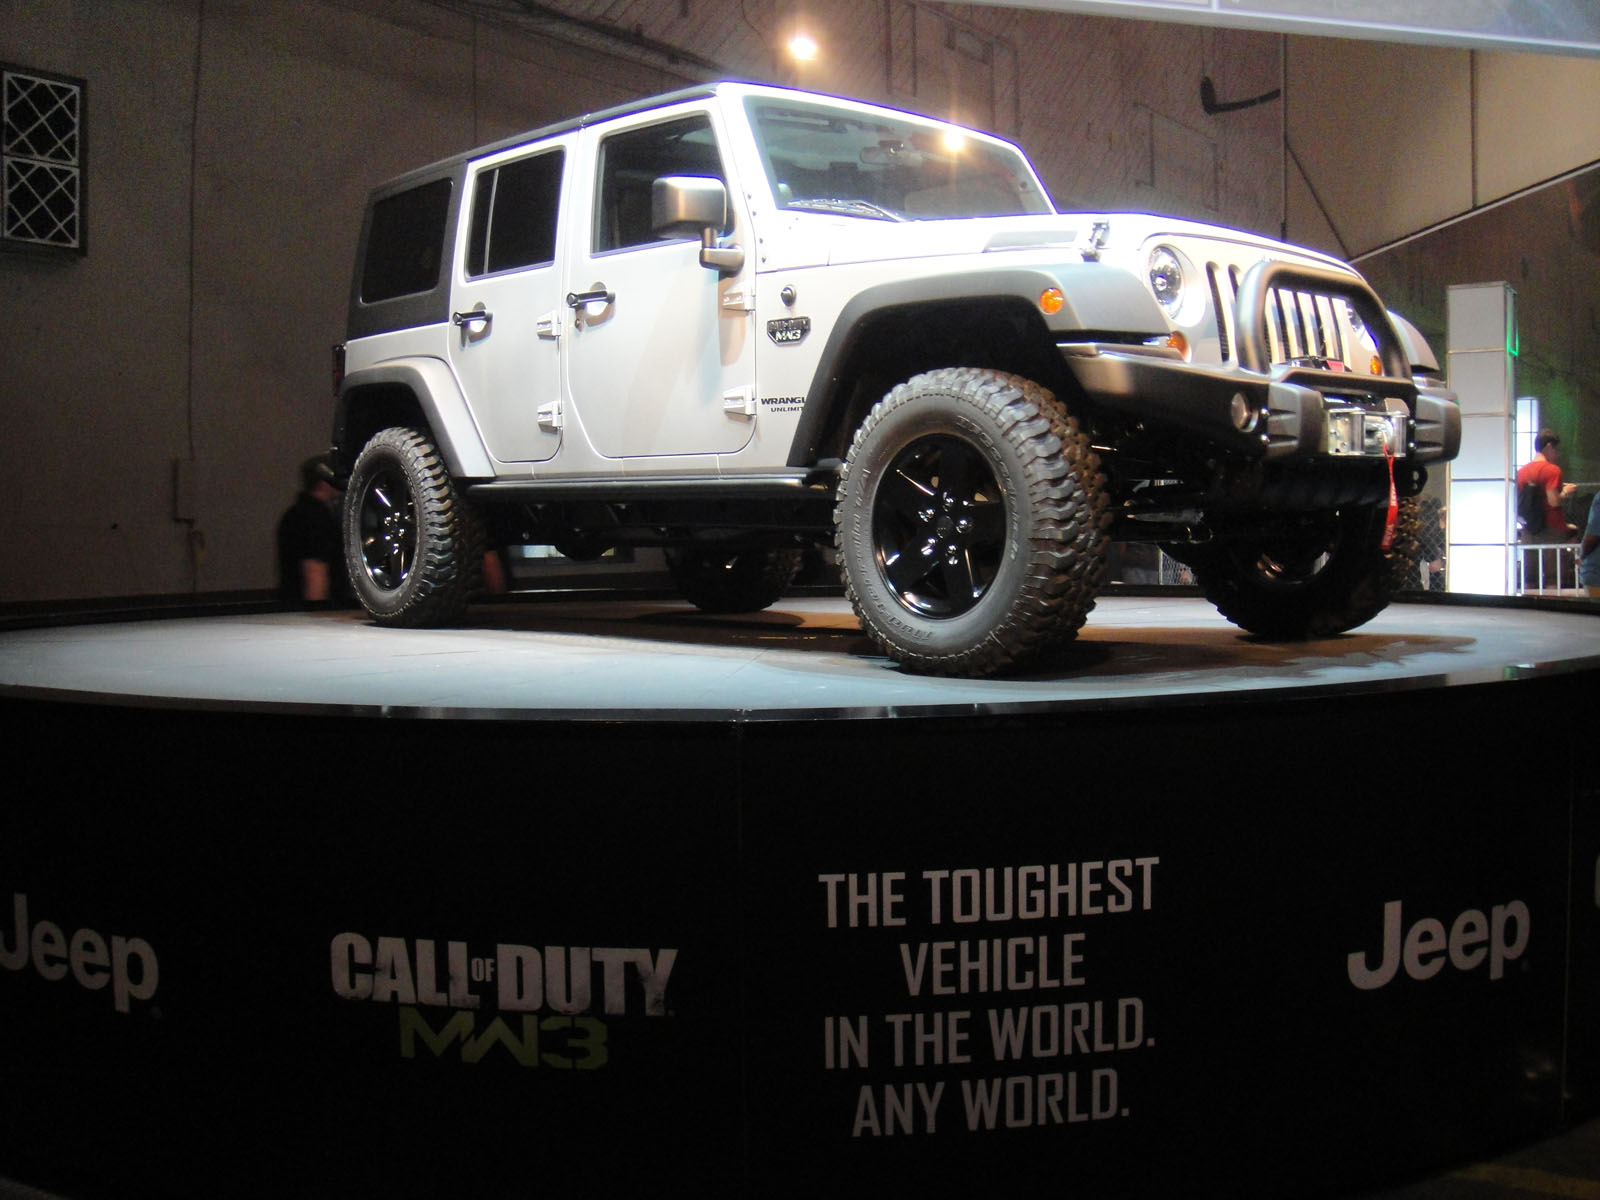 File:Call Of Duty XP 2011   Call Of Duty MW3 Jeep (6113478243)